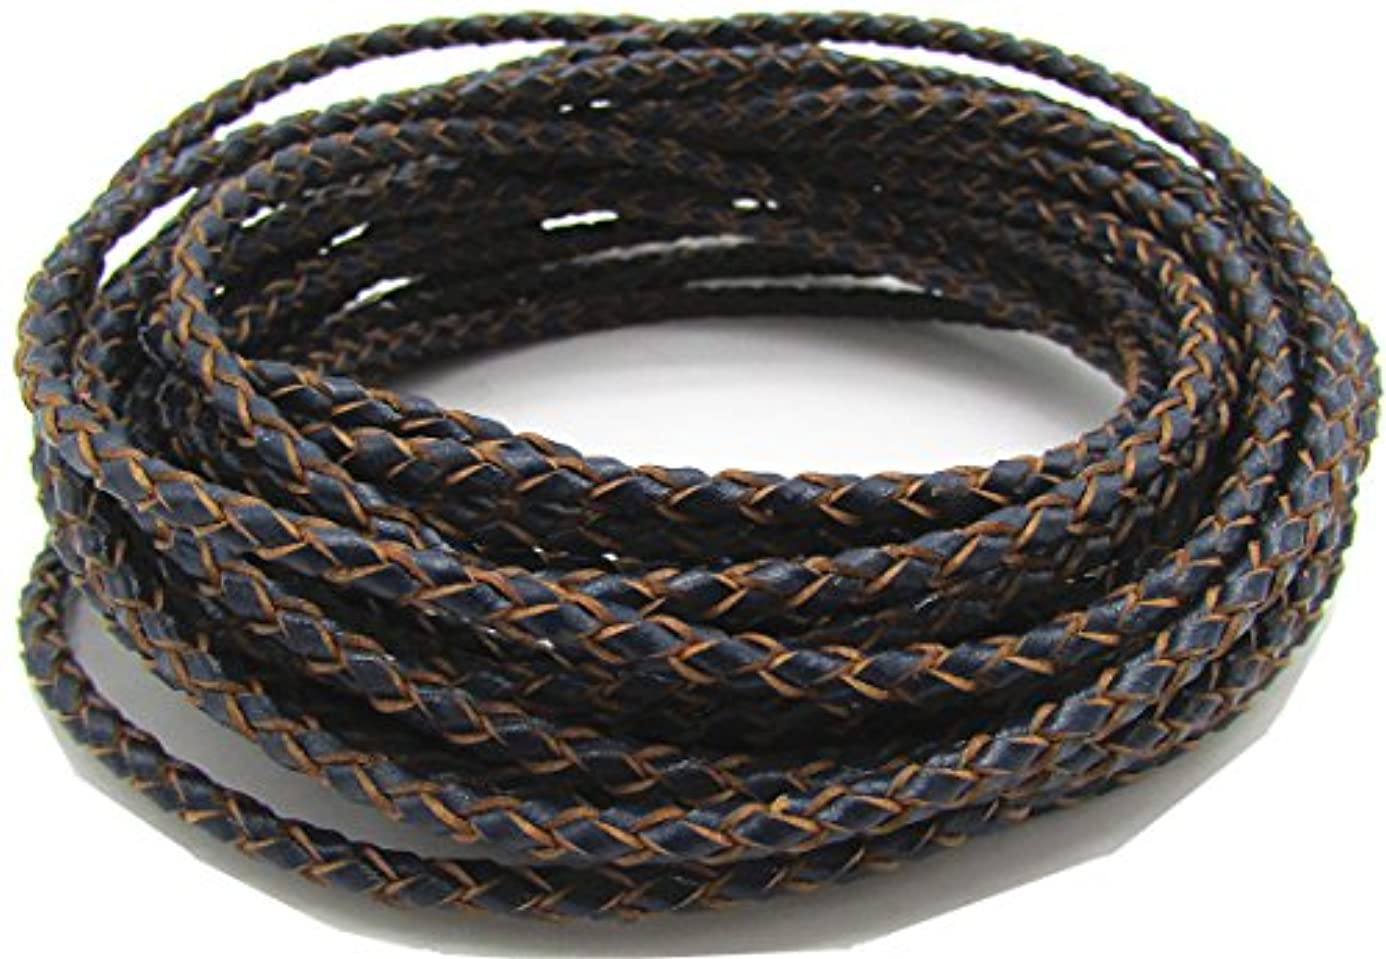 3mm Round Folded Genuine Leather Cords for Bracelet Necklace Jewelry Making 5 Meters (Navy Blue) stg7036709